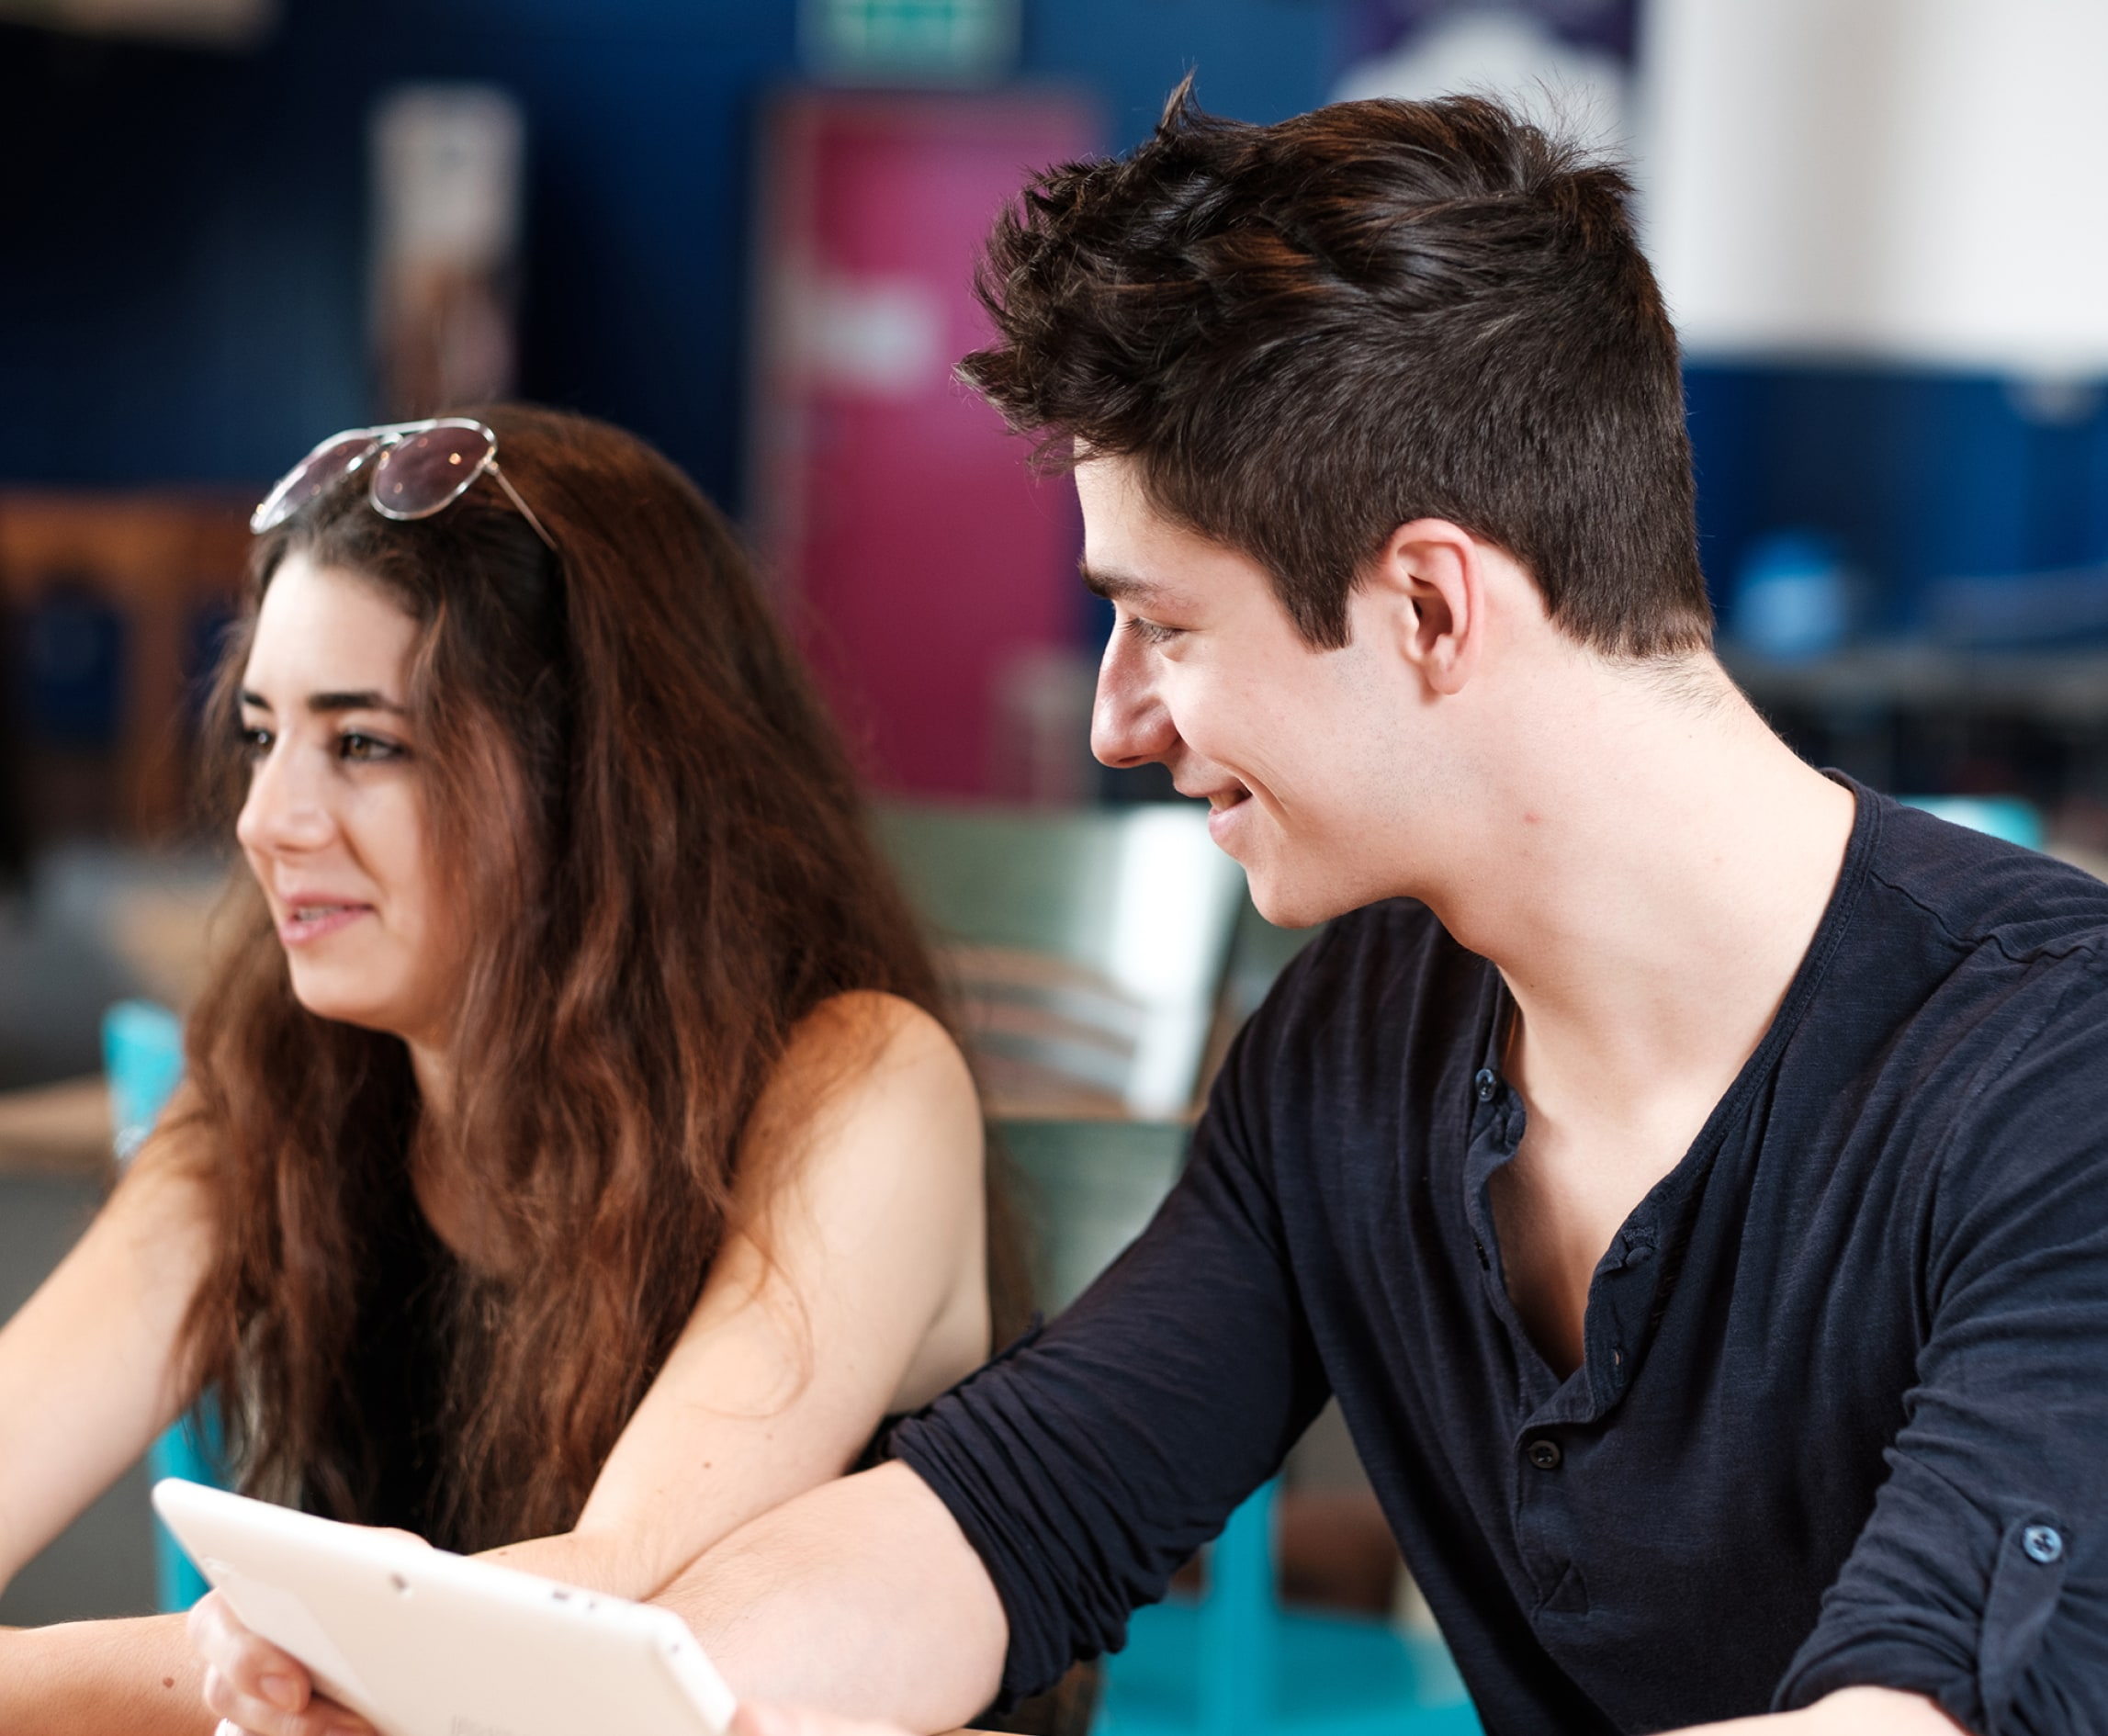 Two students in class